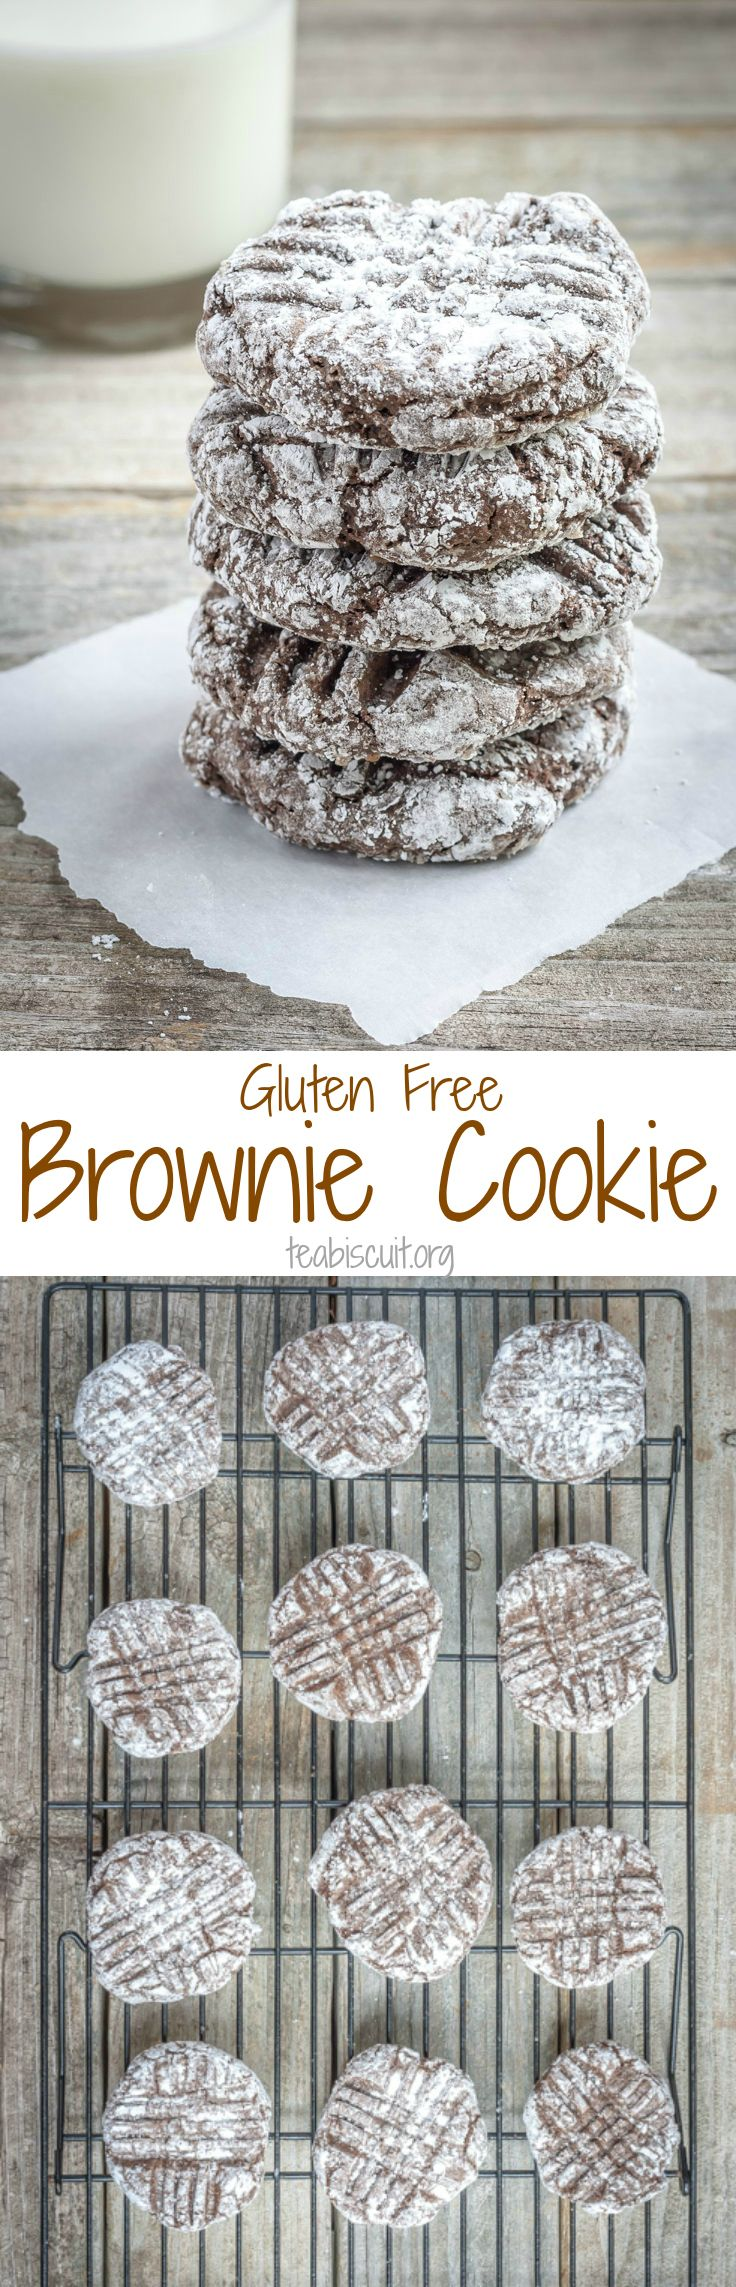 Mixed In One Bowl Gluten Free Brownie Cookies That Taste Like The